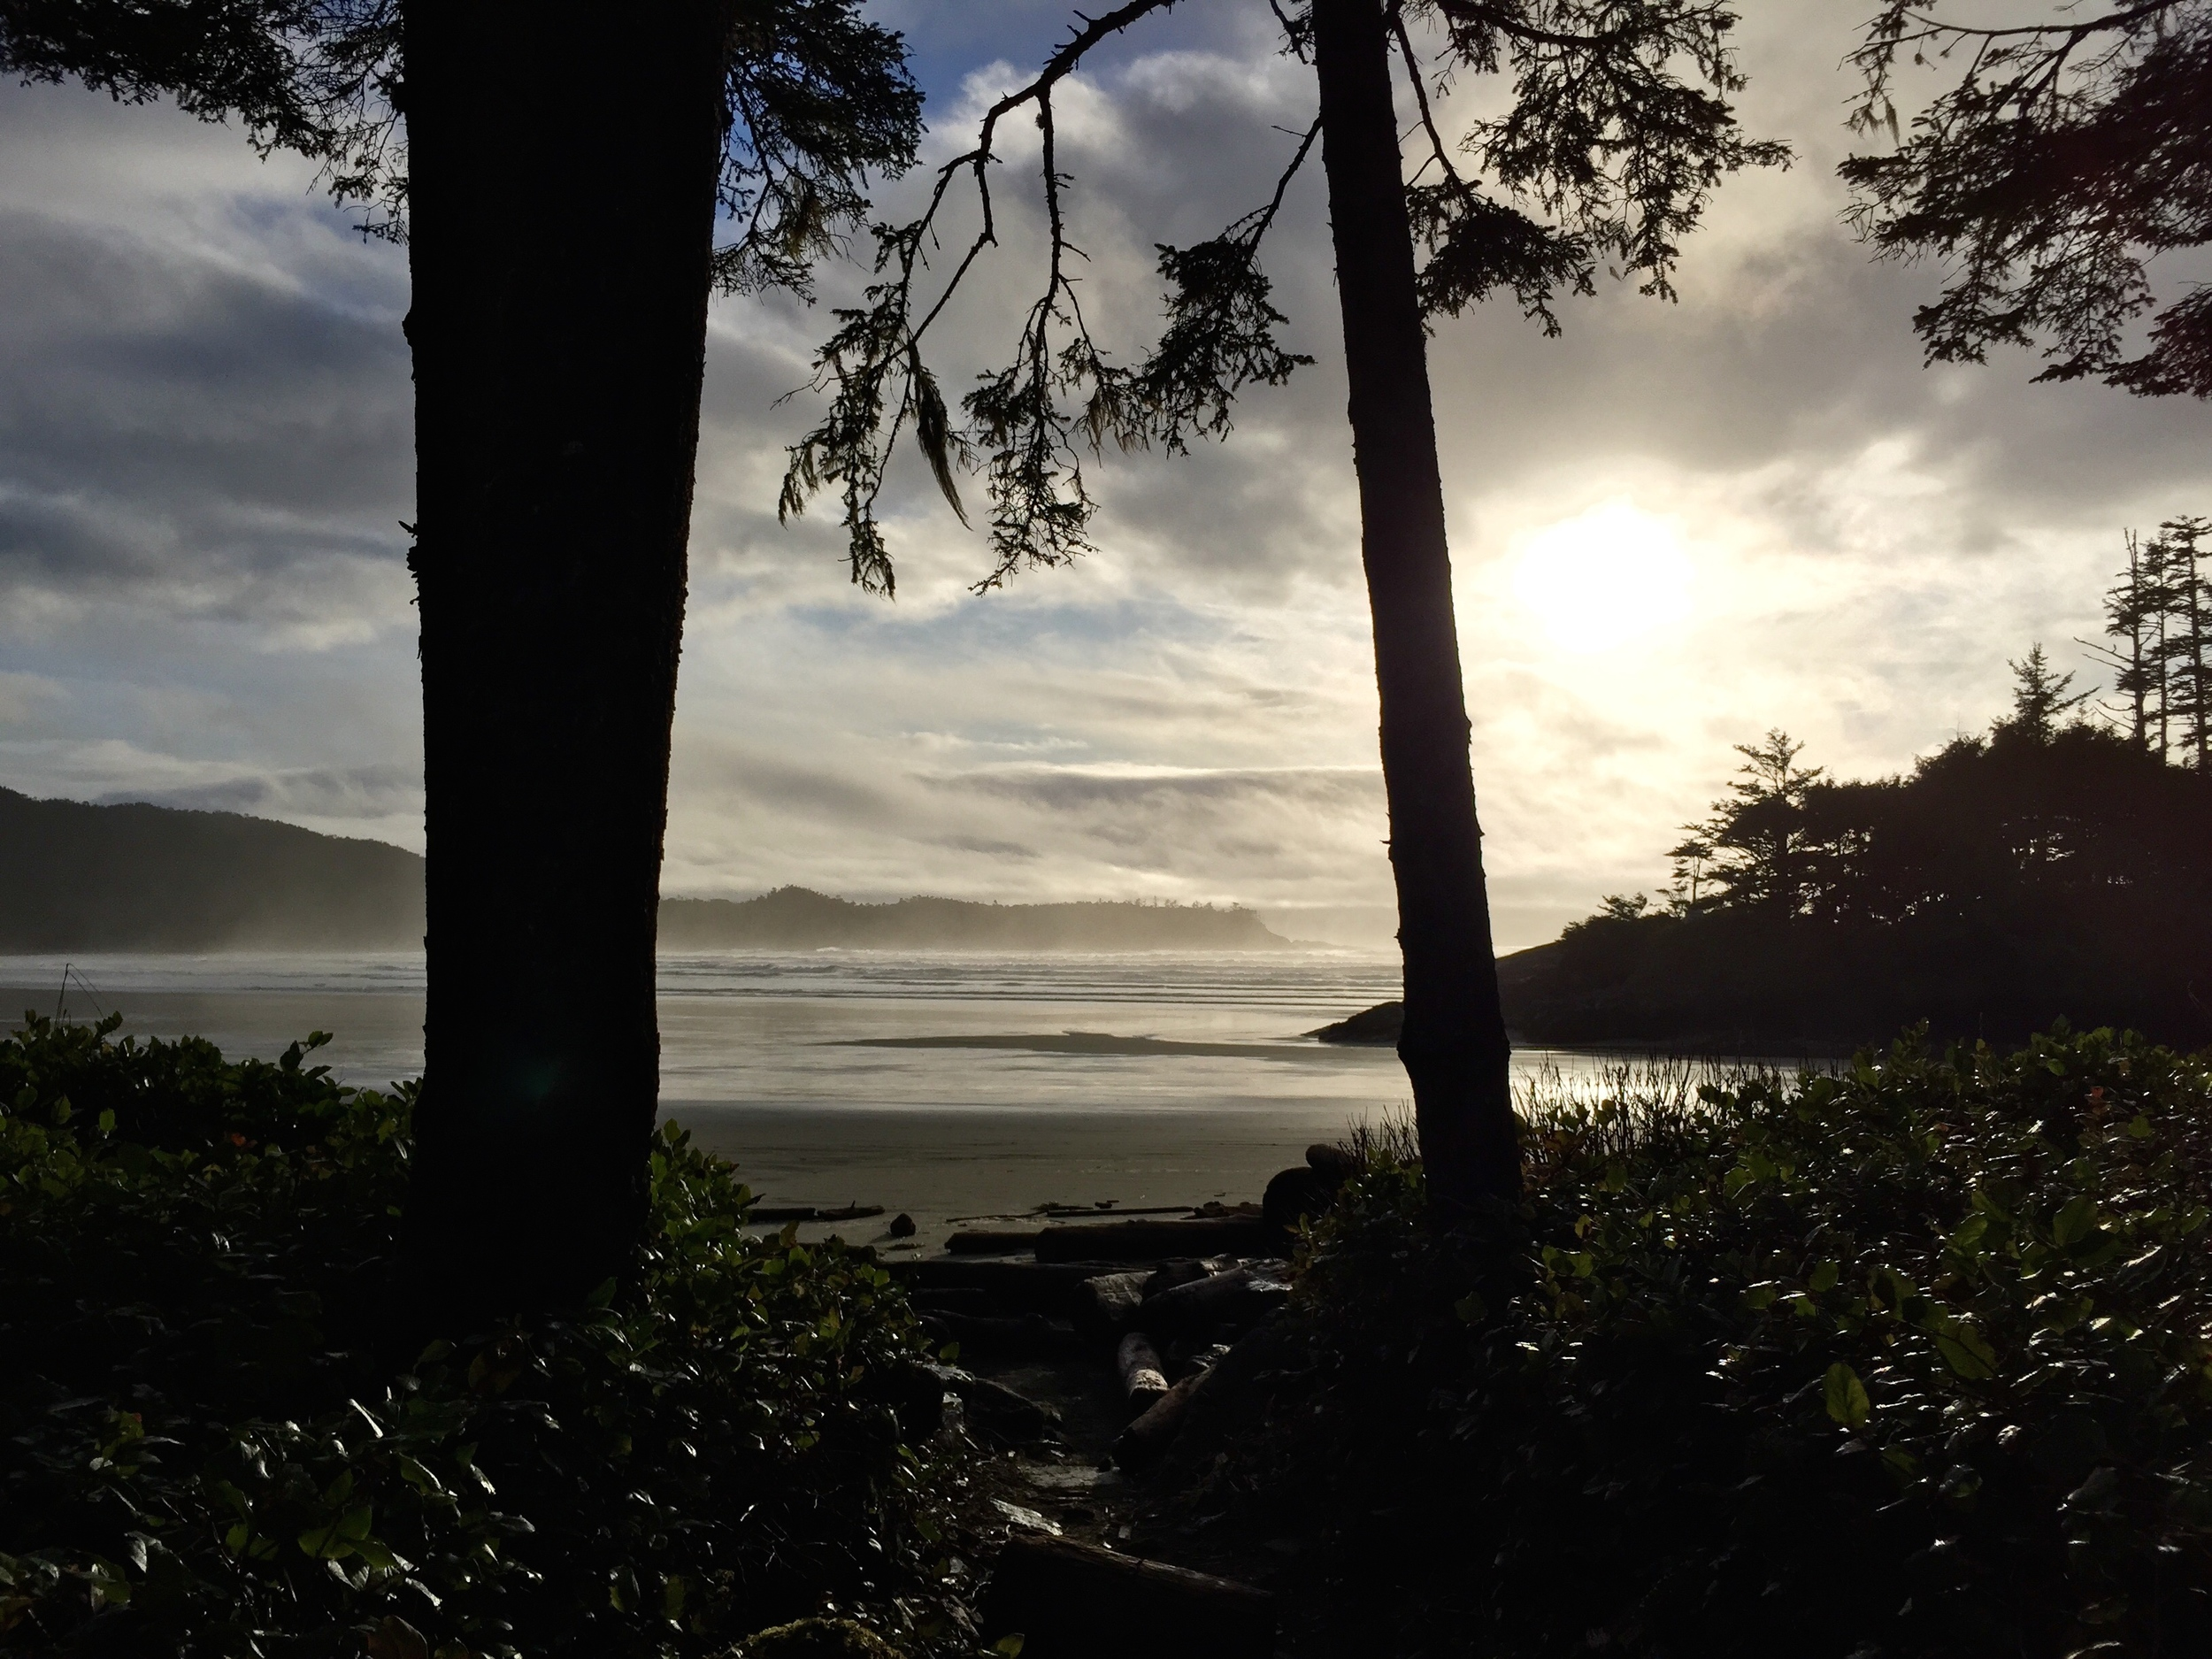 A typical Pacific Sands afternoon, best enjoyed with a bottle of BC wine